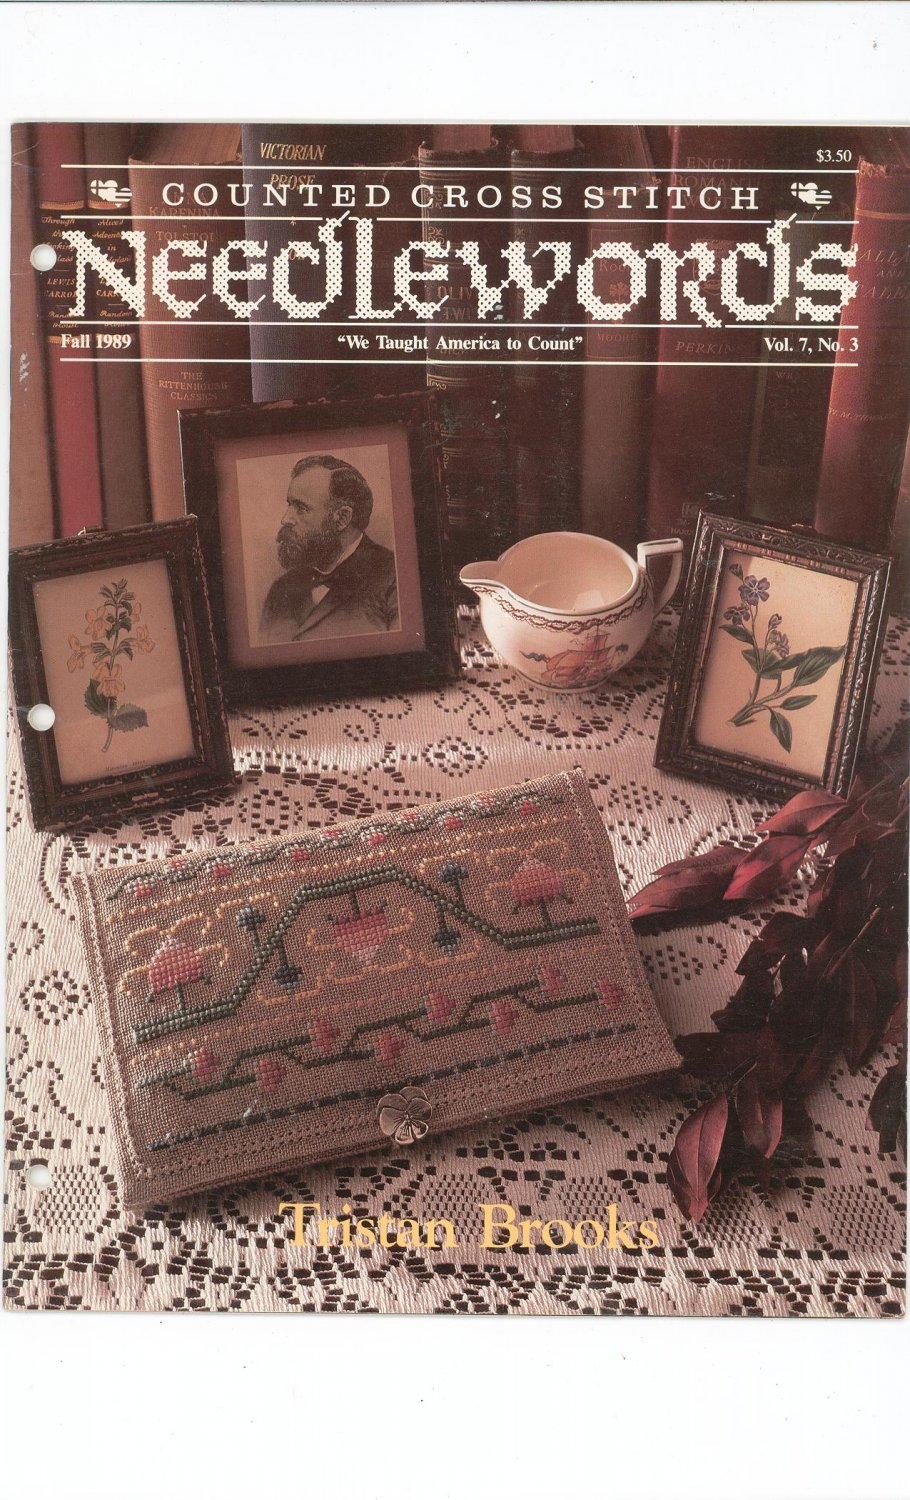 Needlewords Counted Cross Stitch Fall 1989 Vol. 7 No. 3  Tristan Books